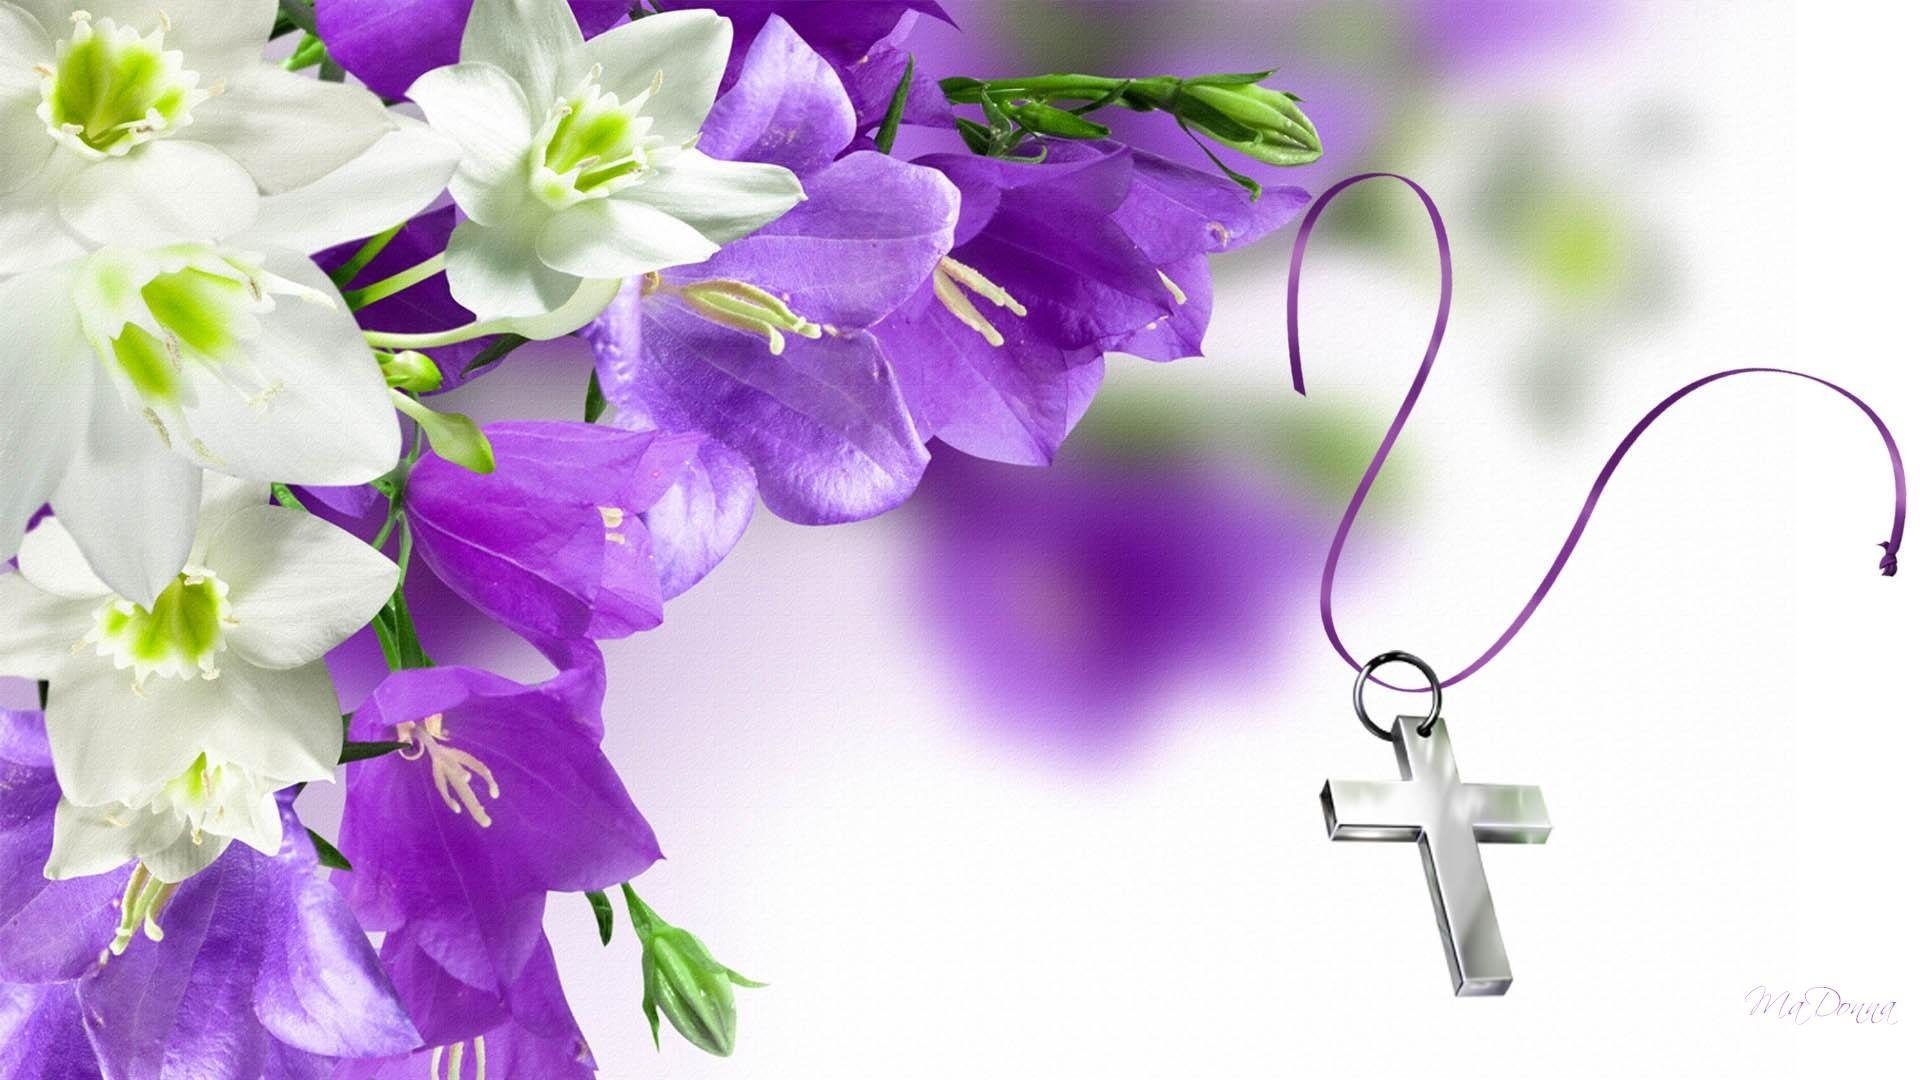 Easter Flowers And Cross Full HD Wallpaper Background Image